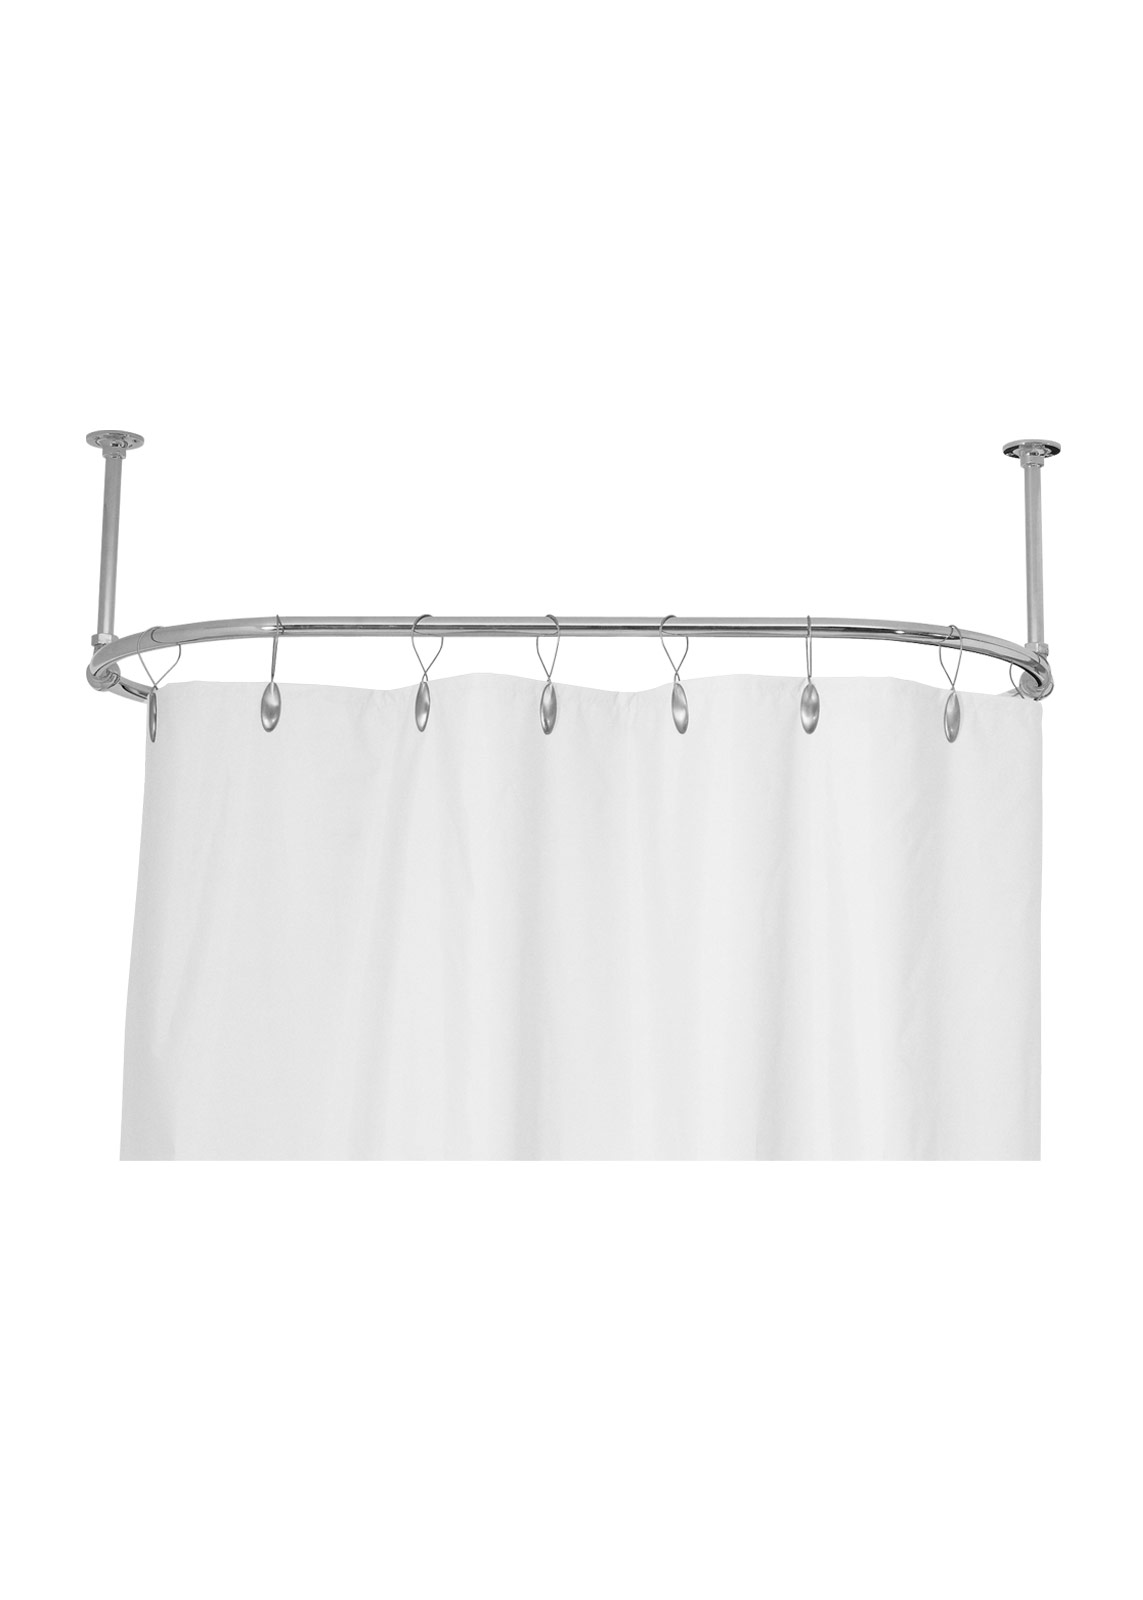 Shower curtain rail Gentry Home